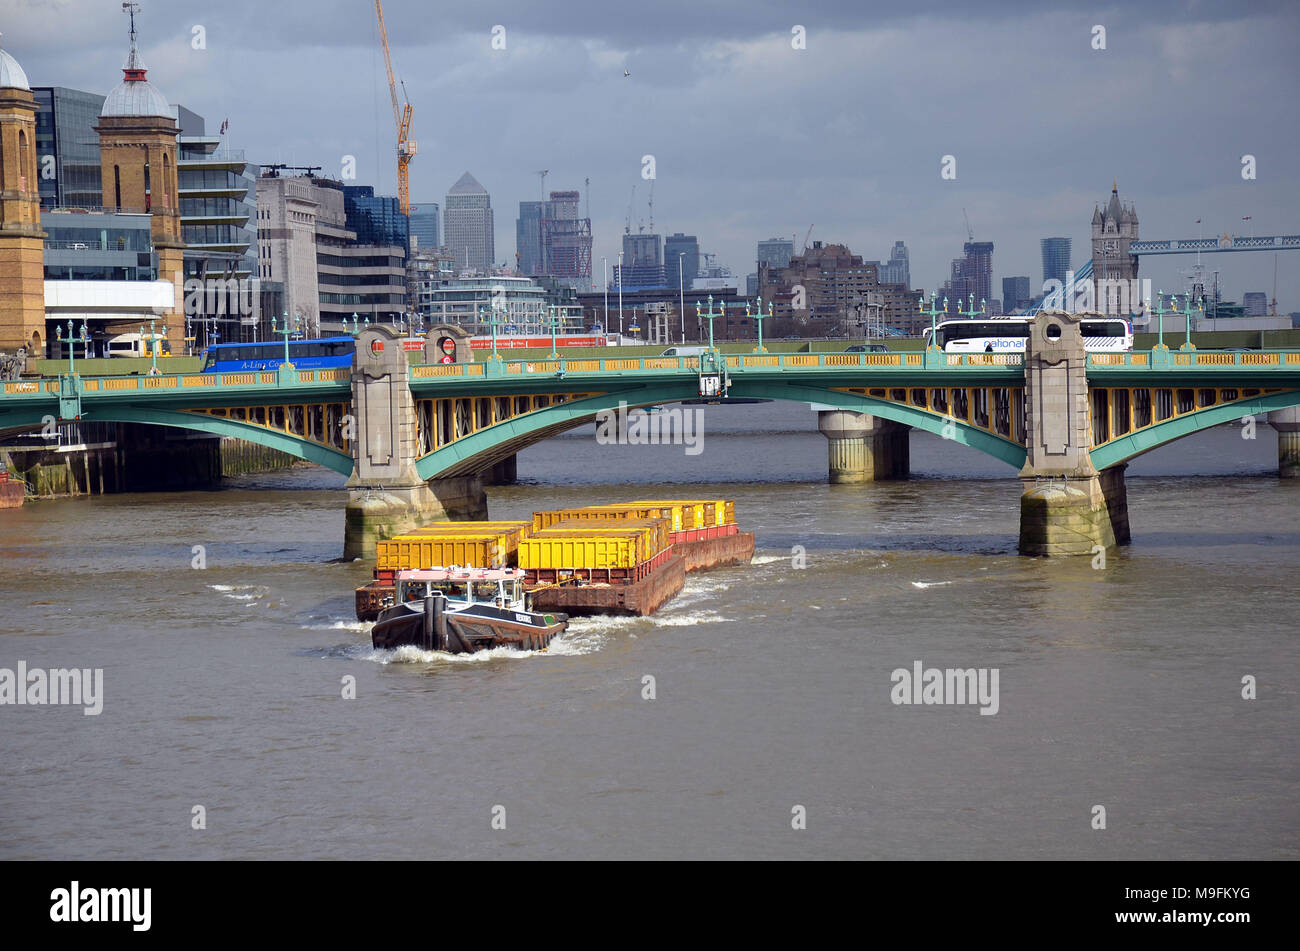 London, UK, 23 March 2018 Tug pulling barge with rubbish containers on the River Thames. Rubbish is taken to landfill in Essex. - Stock Image